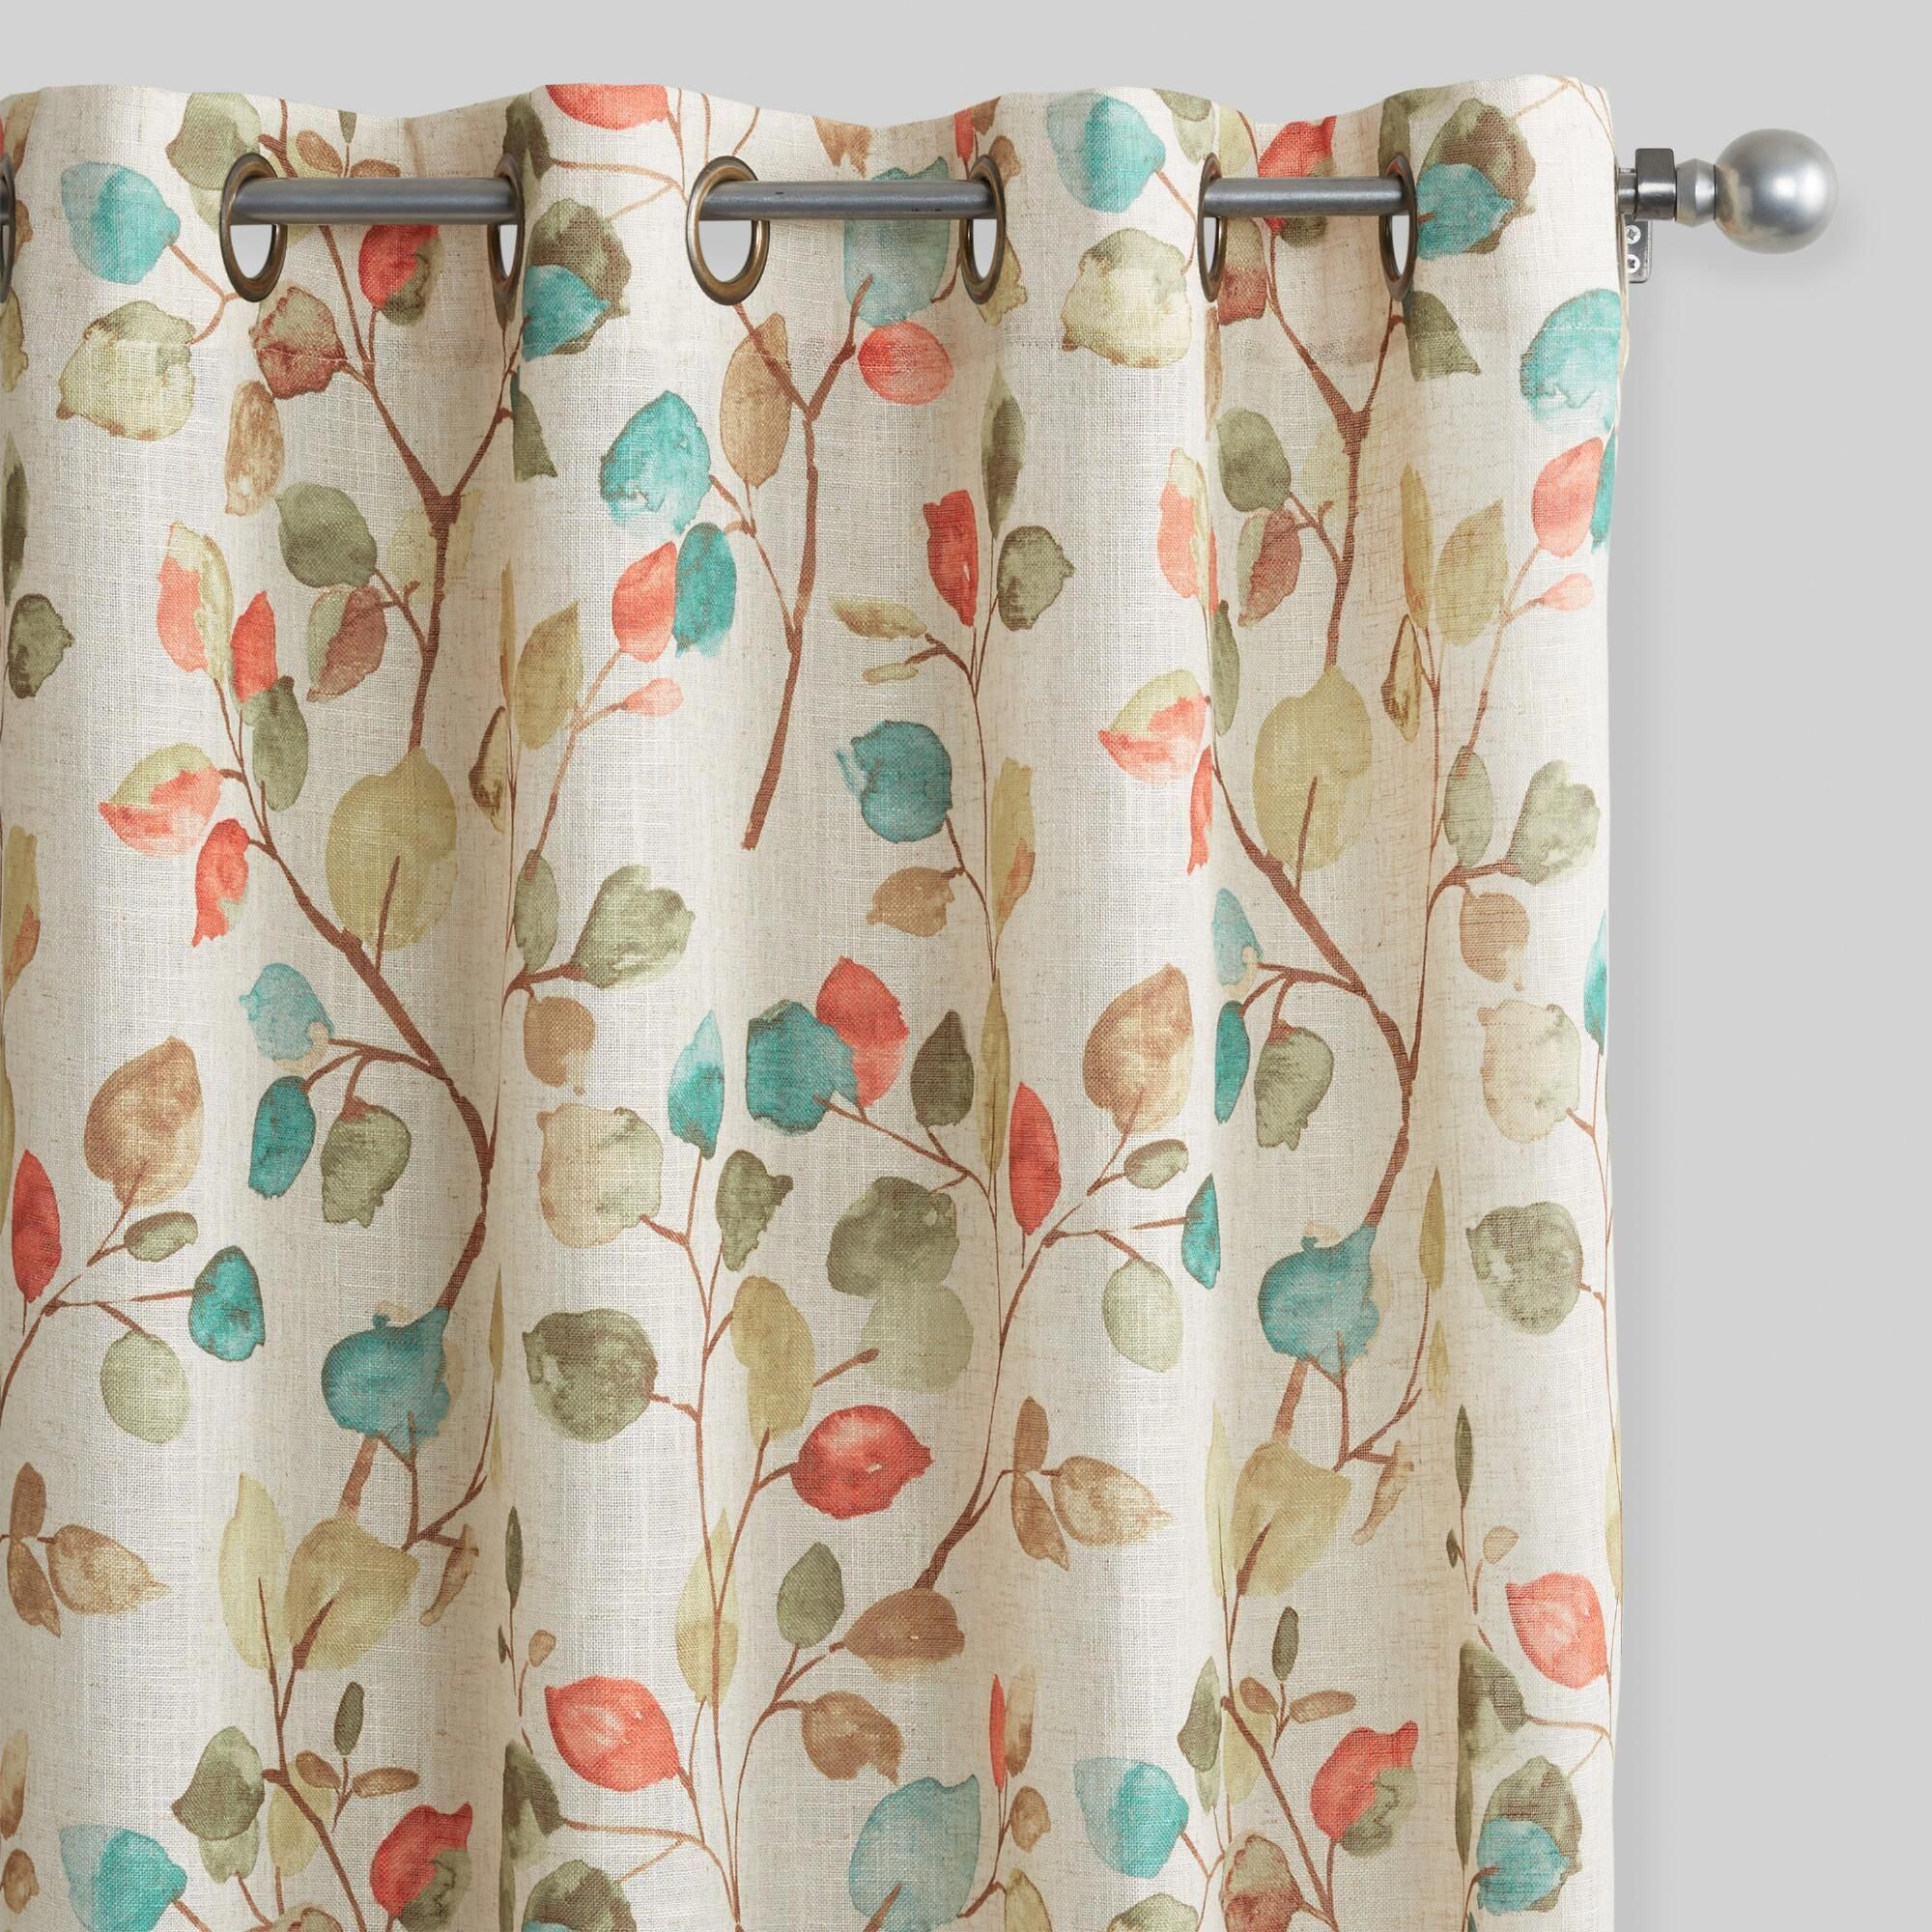 Autumn Leaves Openweave Grommet Top Curtains: Multi